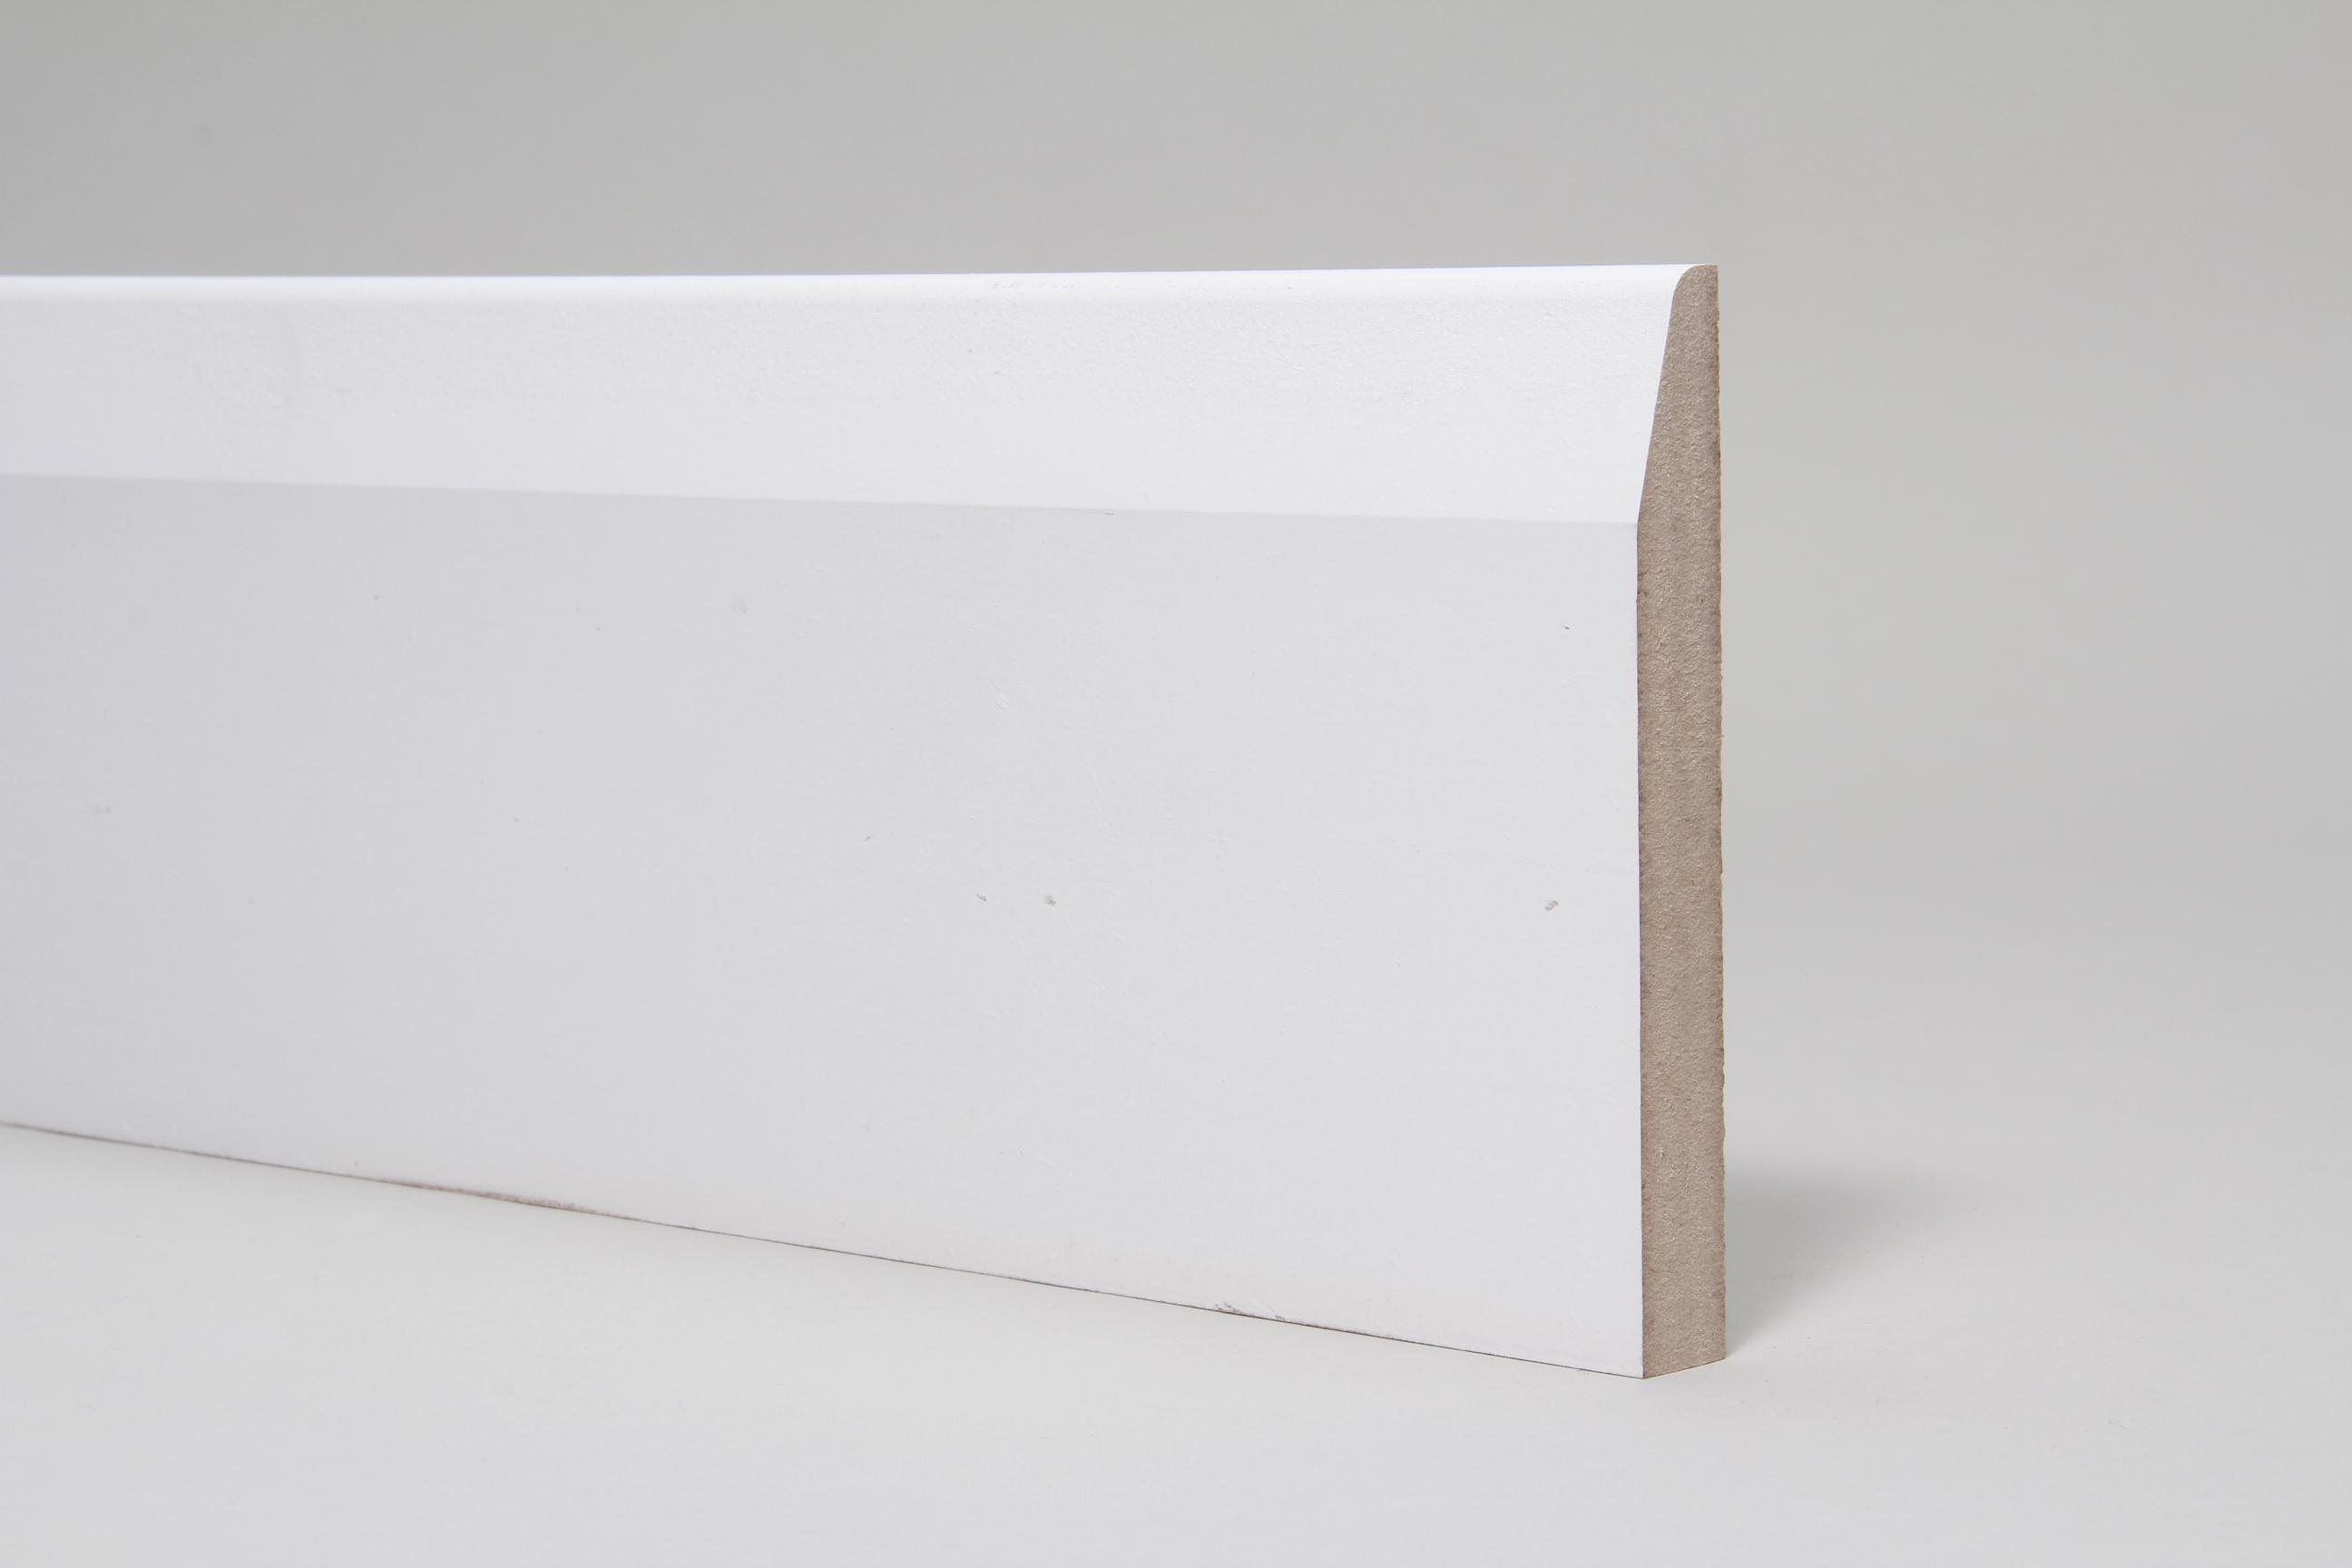 Chamfered & Rounded 18mm x 144mm x 4.4 Mtr Primed